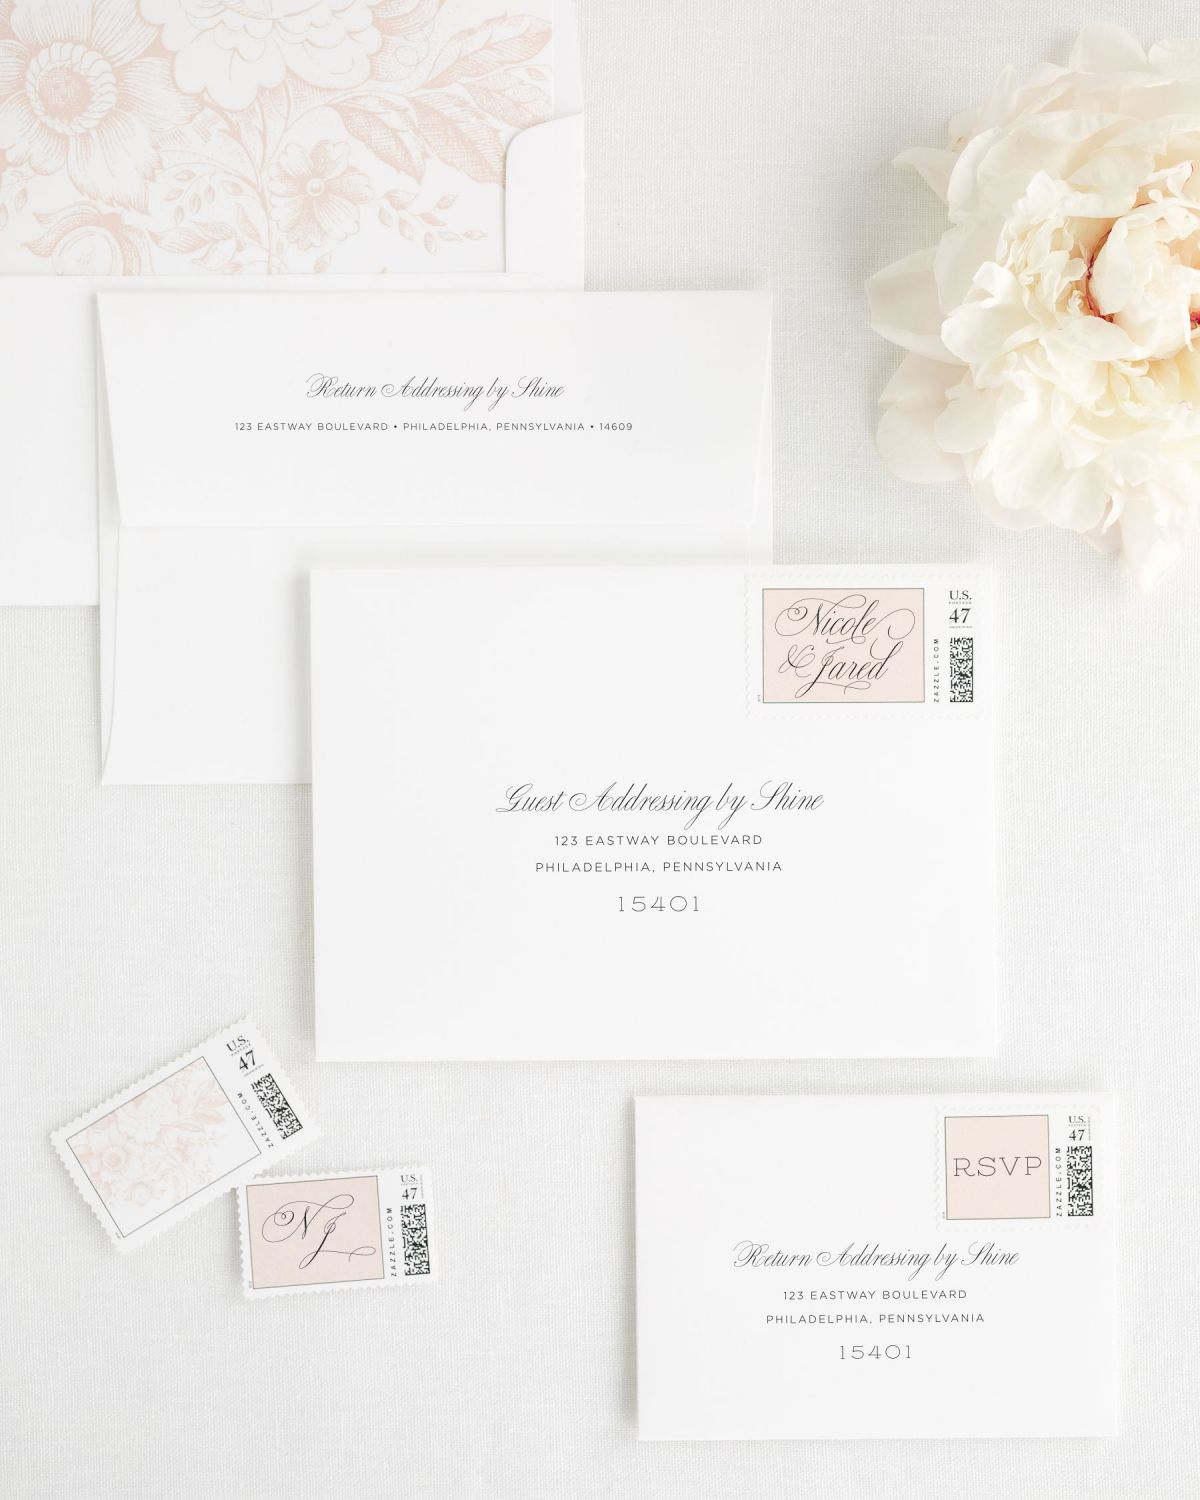 Wedding Invitation Envelopes With Guest Addressing And Custom Postage